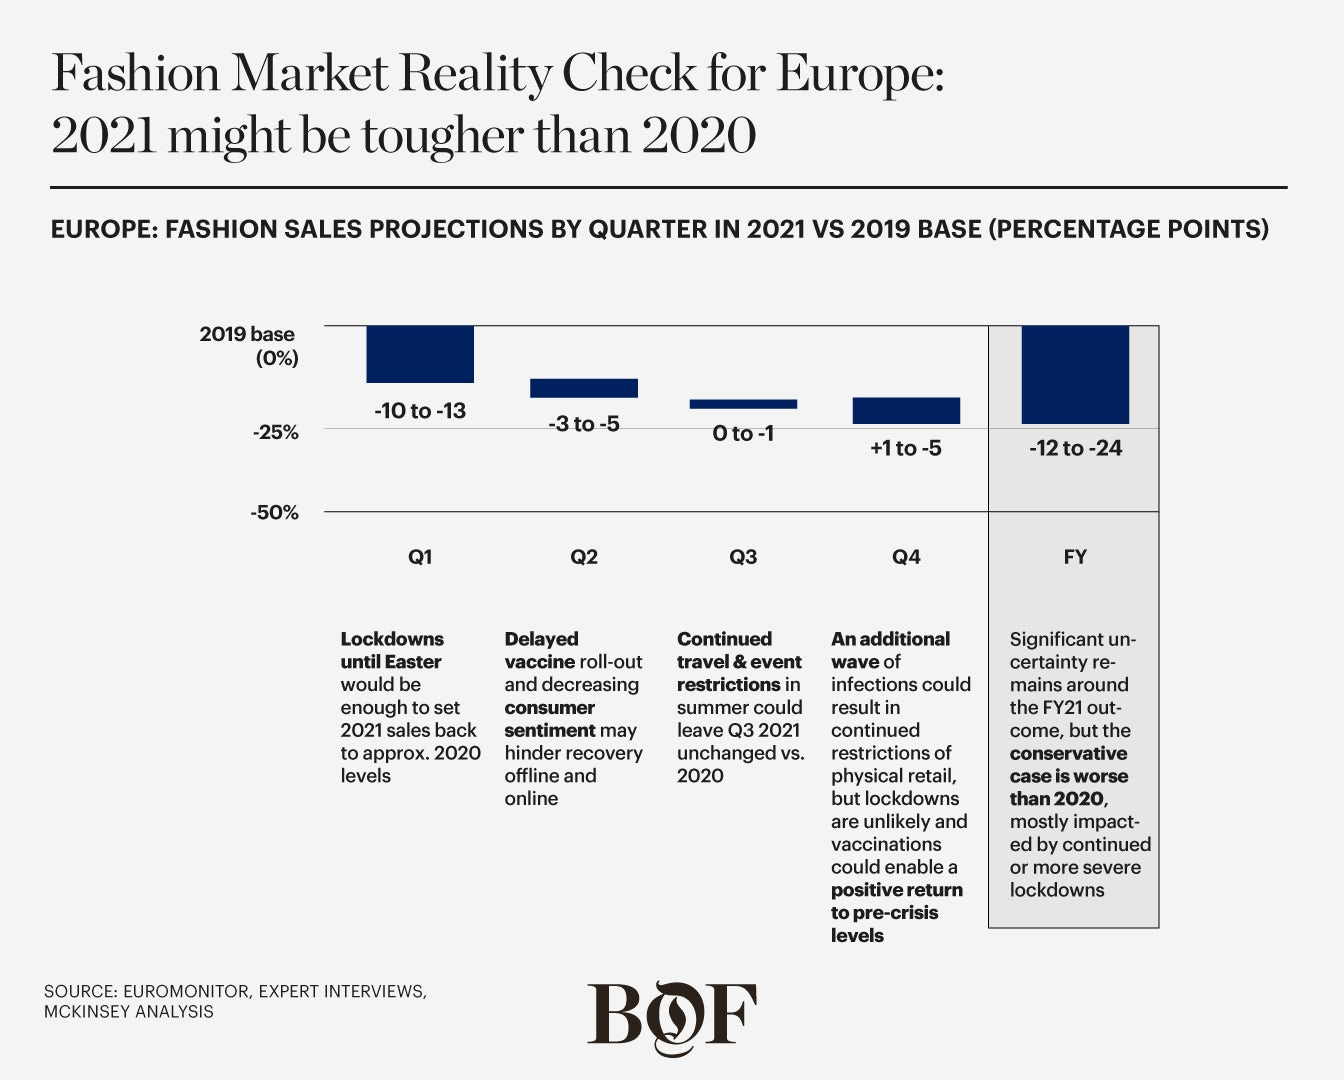 Europe: Fashion Sales Projections by Quarter in 2021 vs 2019 Base (Percentage Points). McKinsey & Company.